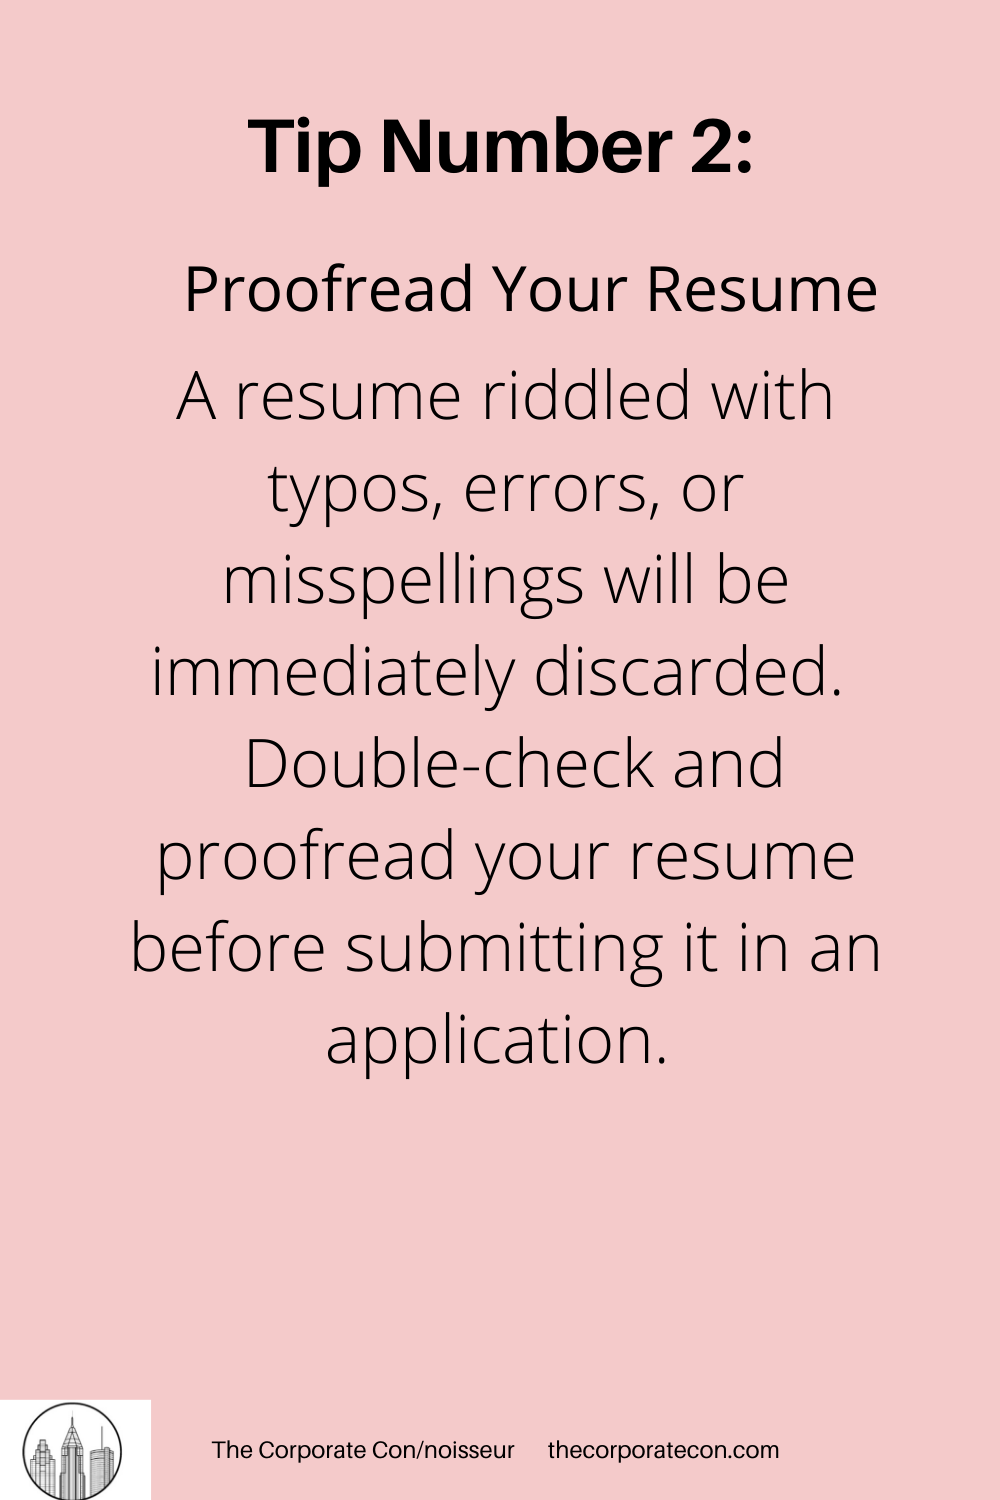 Proofread Your Resume in 2020 Resume, Proofreader